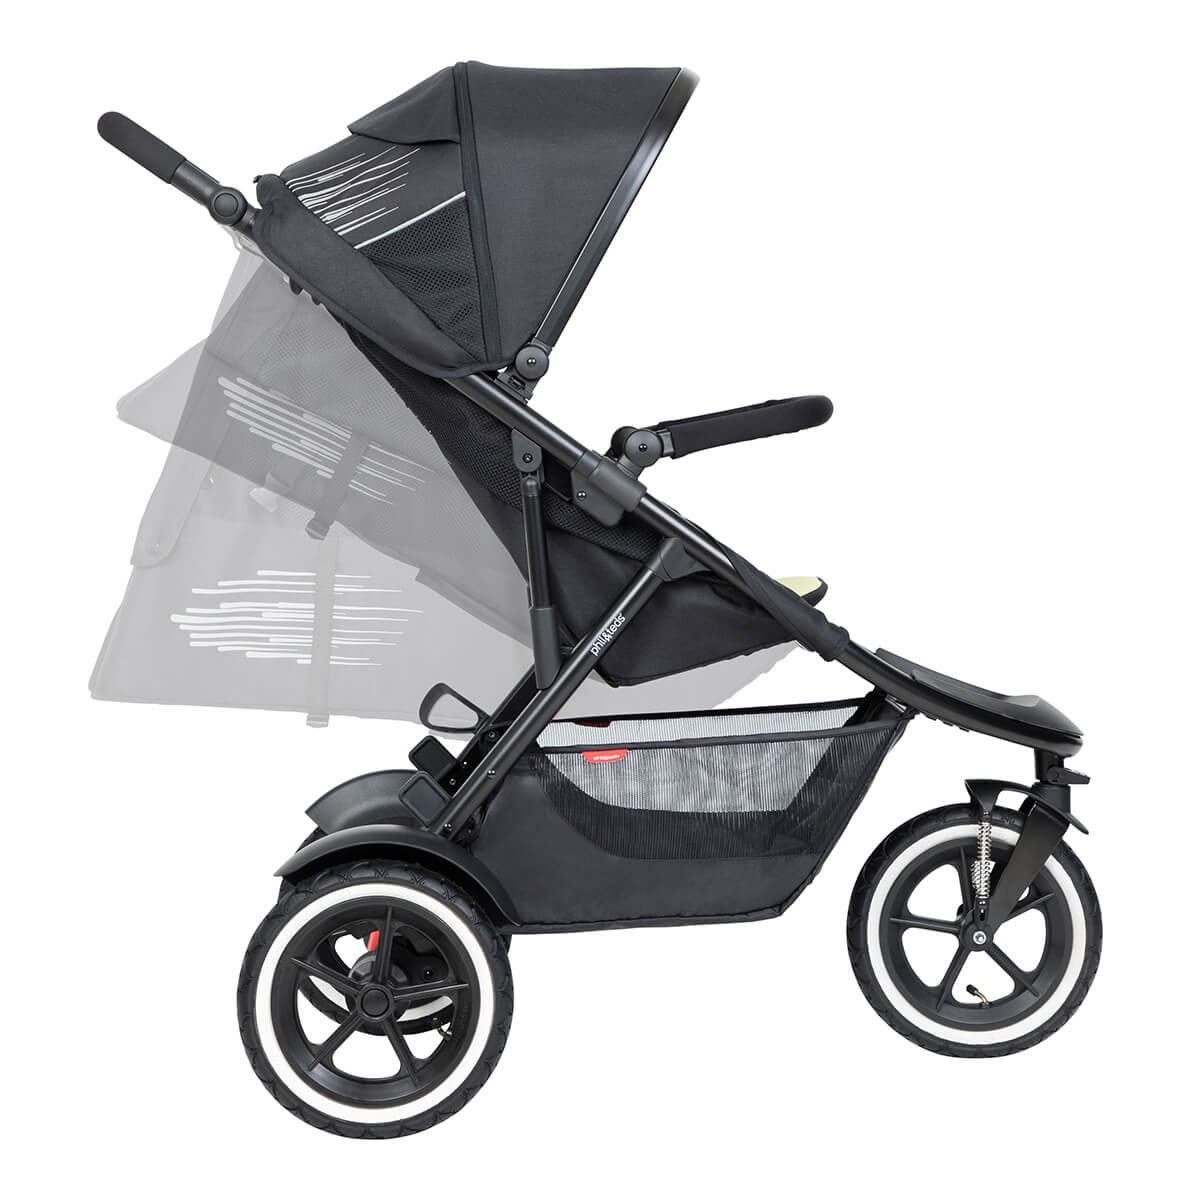 https://cdn.accentuate.io/4343443488802/19437753335986/philteds-sport-buggy-can-recline-in-multiple-angles-including-full-recline-for-newborn-baby-v1626482671275.jpg?1200x1200